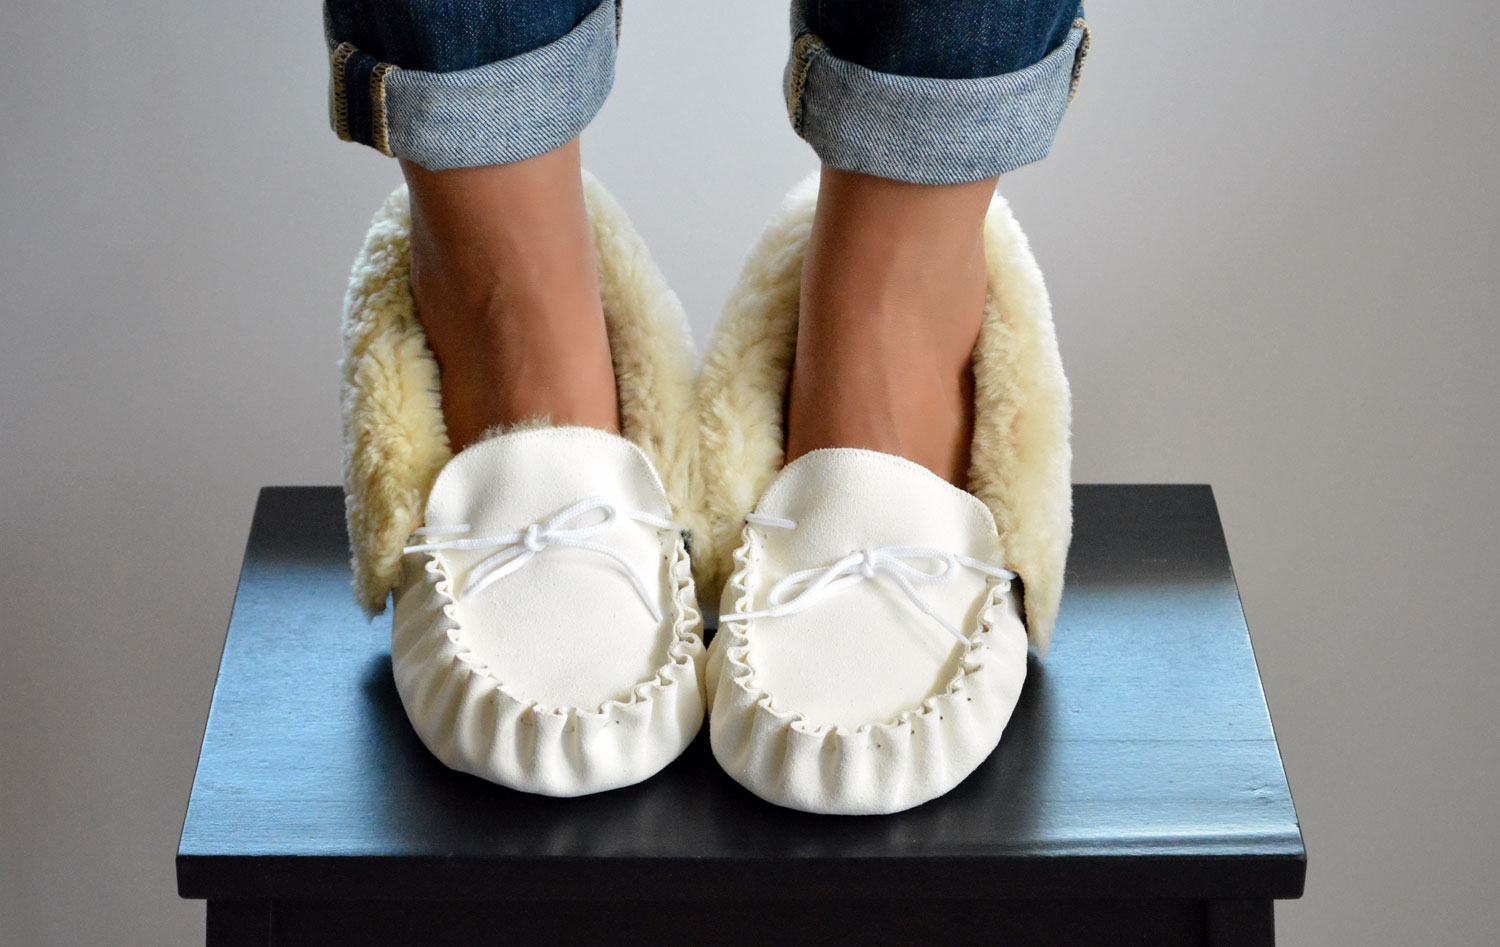 874a1f42c1c The Moccasin Slippers for Women. Handmade White leather shoe Moccasin  slippers for women